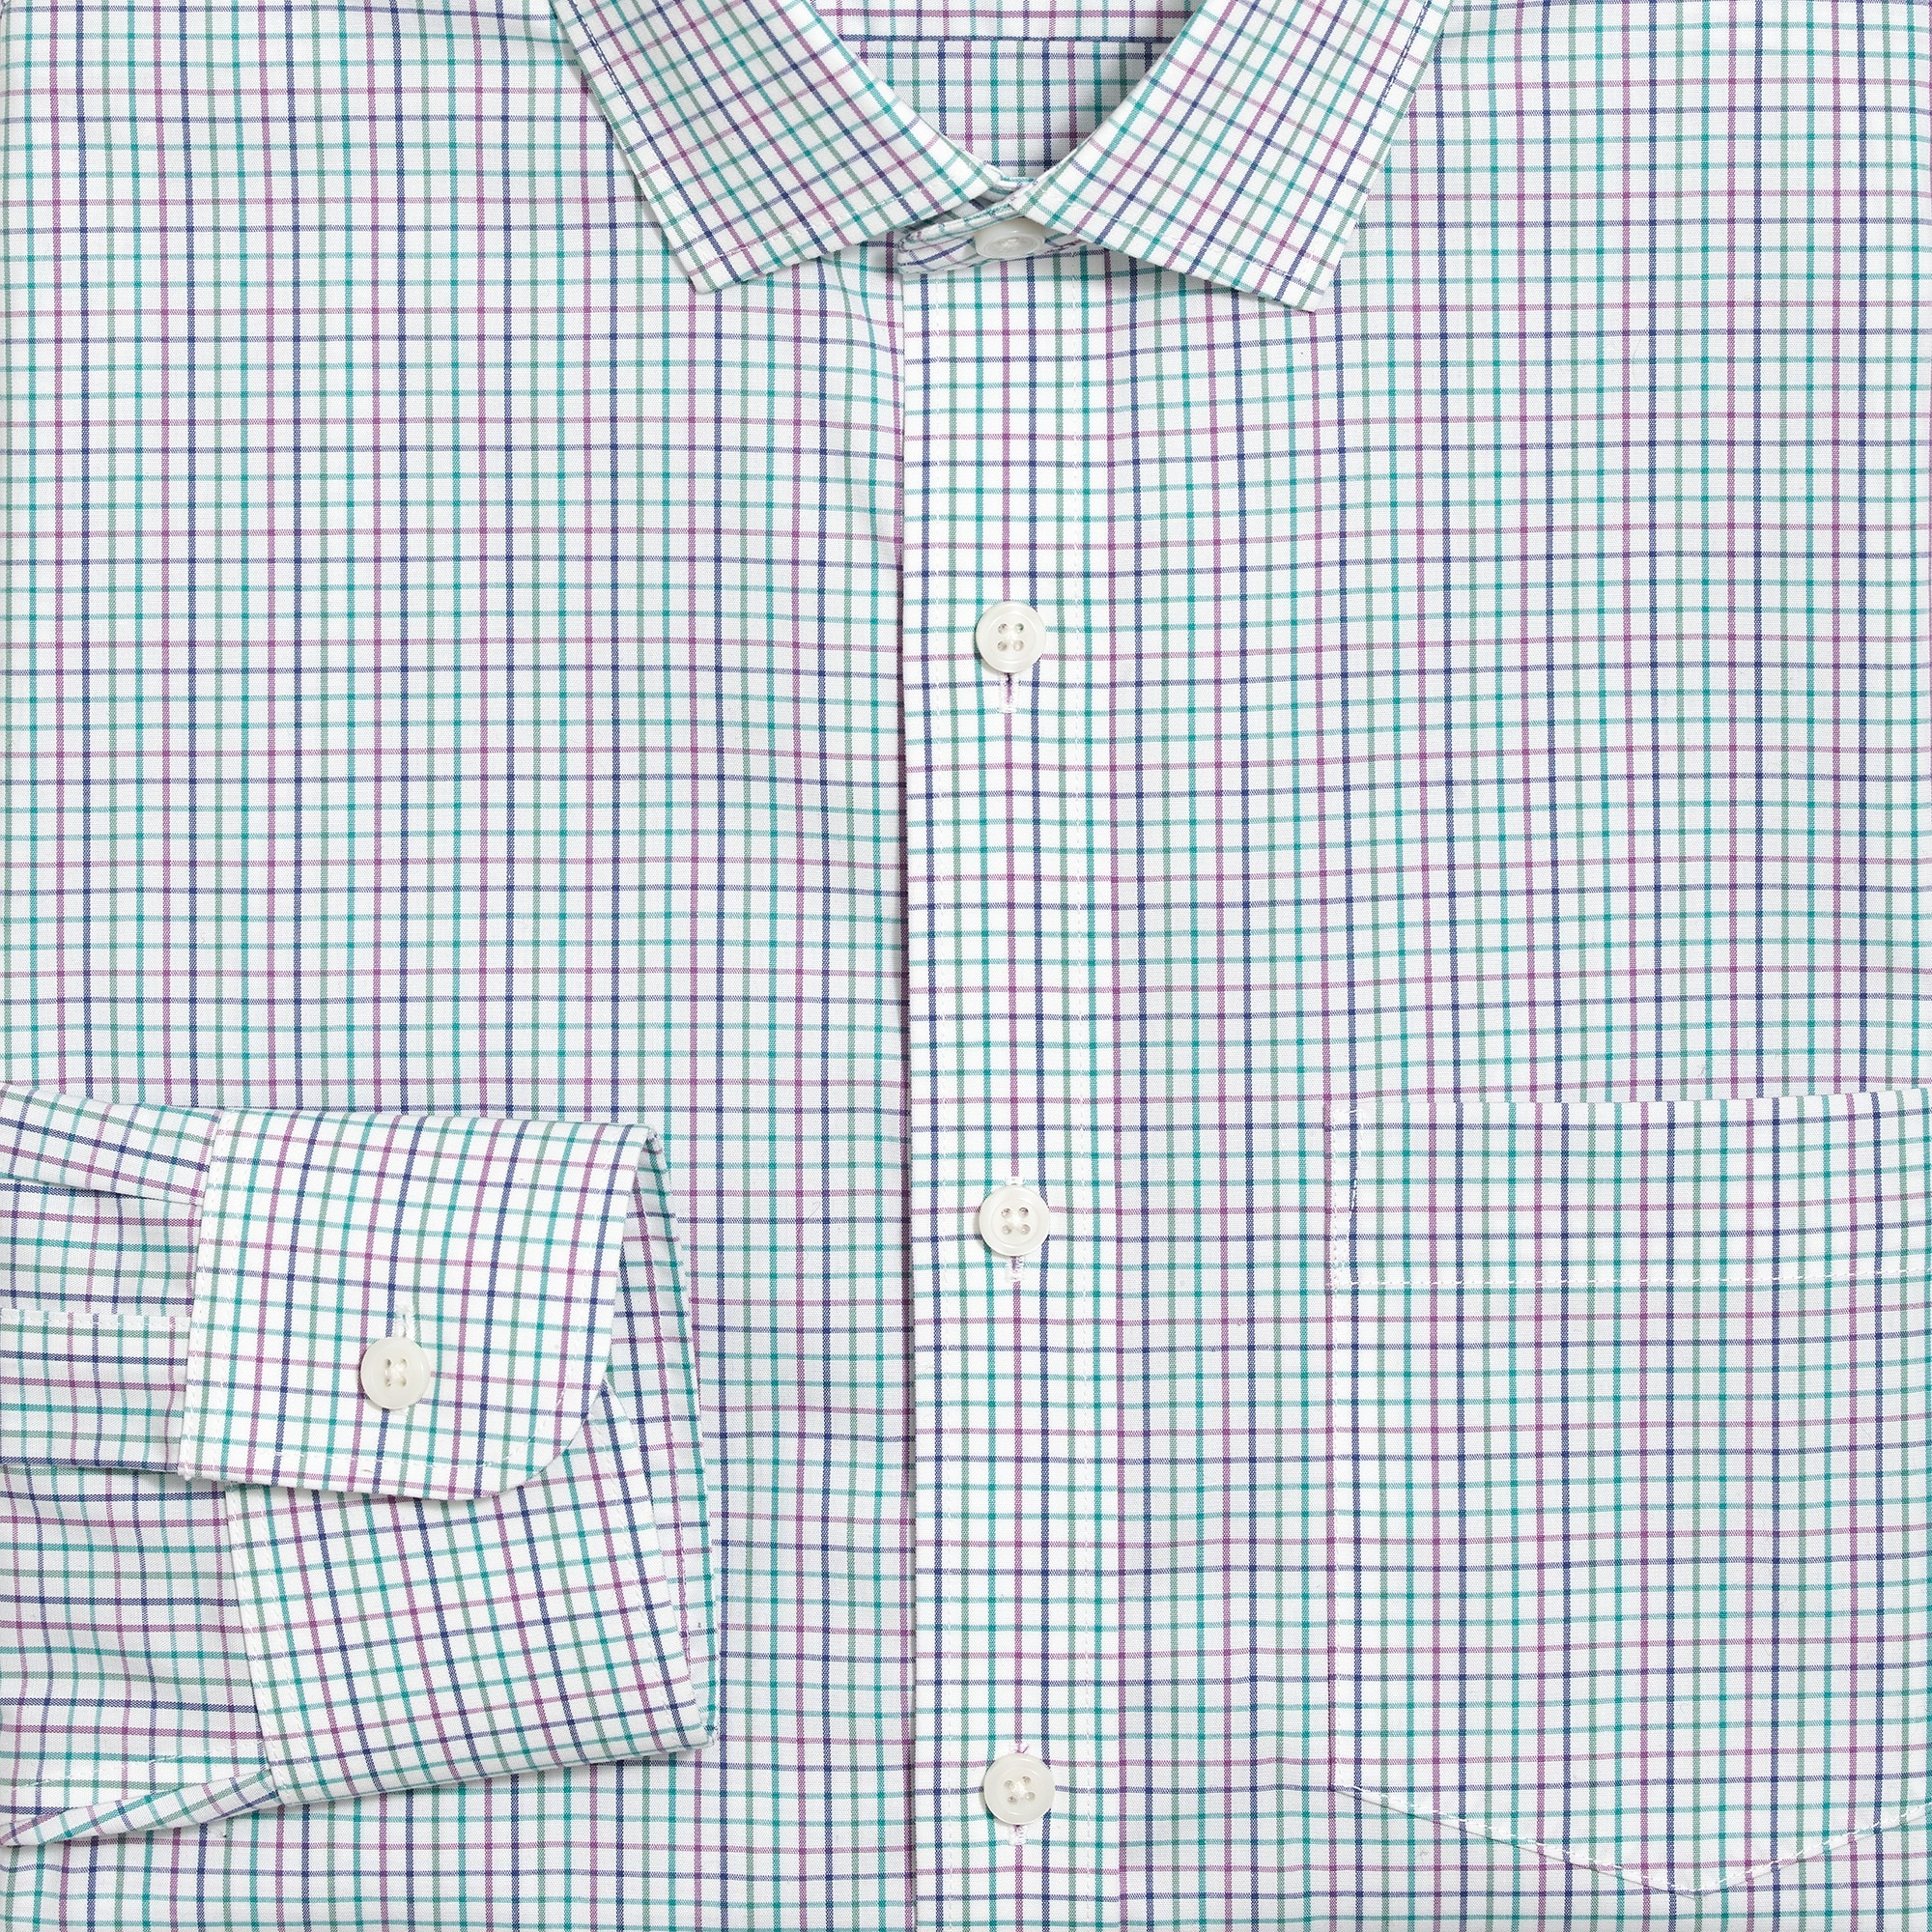 Image 4 for Slim Thompson flex wrinkle-free dress shirt